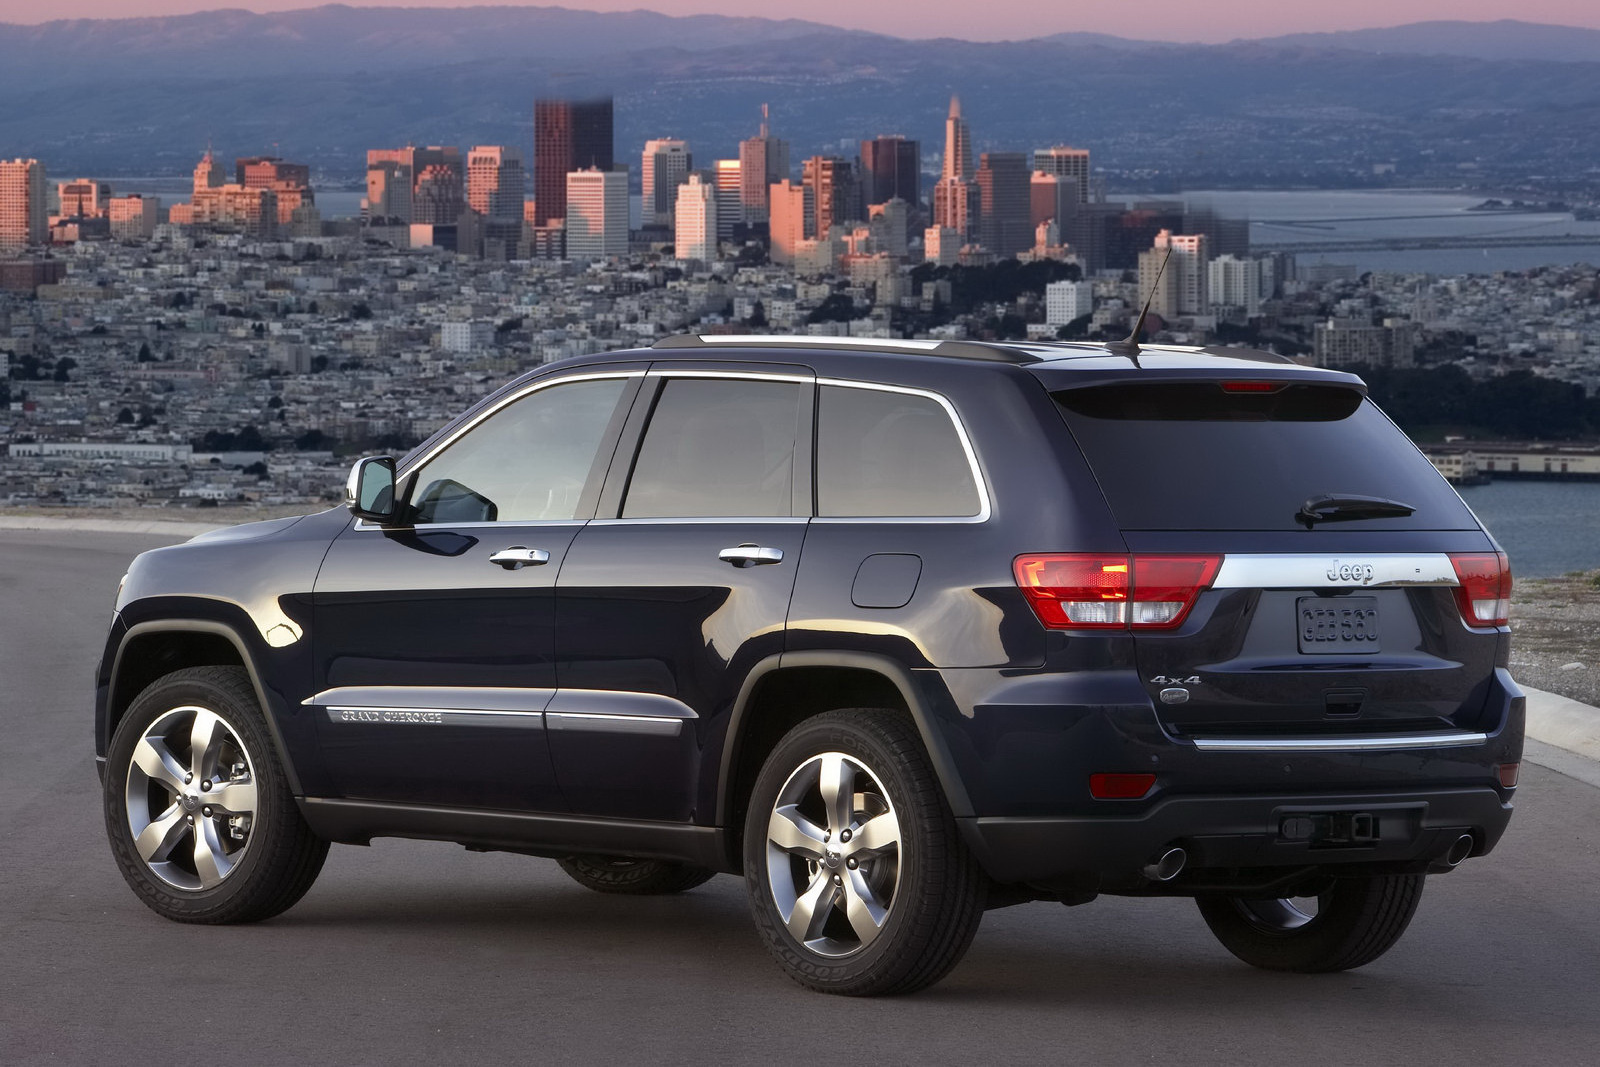 jeep releases new photos and video of 2011 grand cherokee. Black Bedroom Furniture Sets. Home Design Ideas